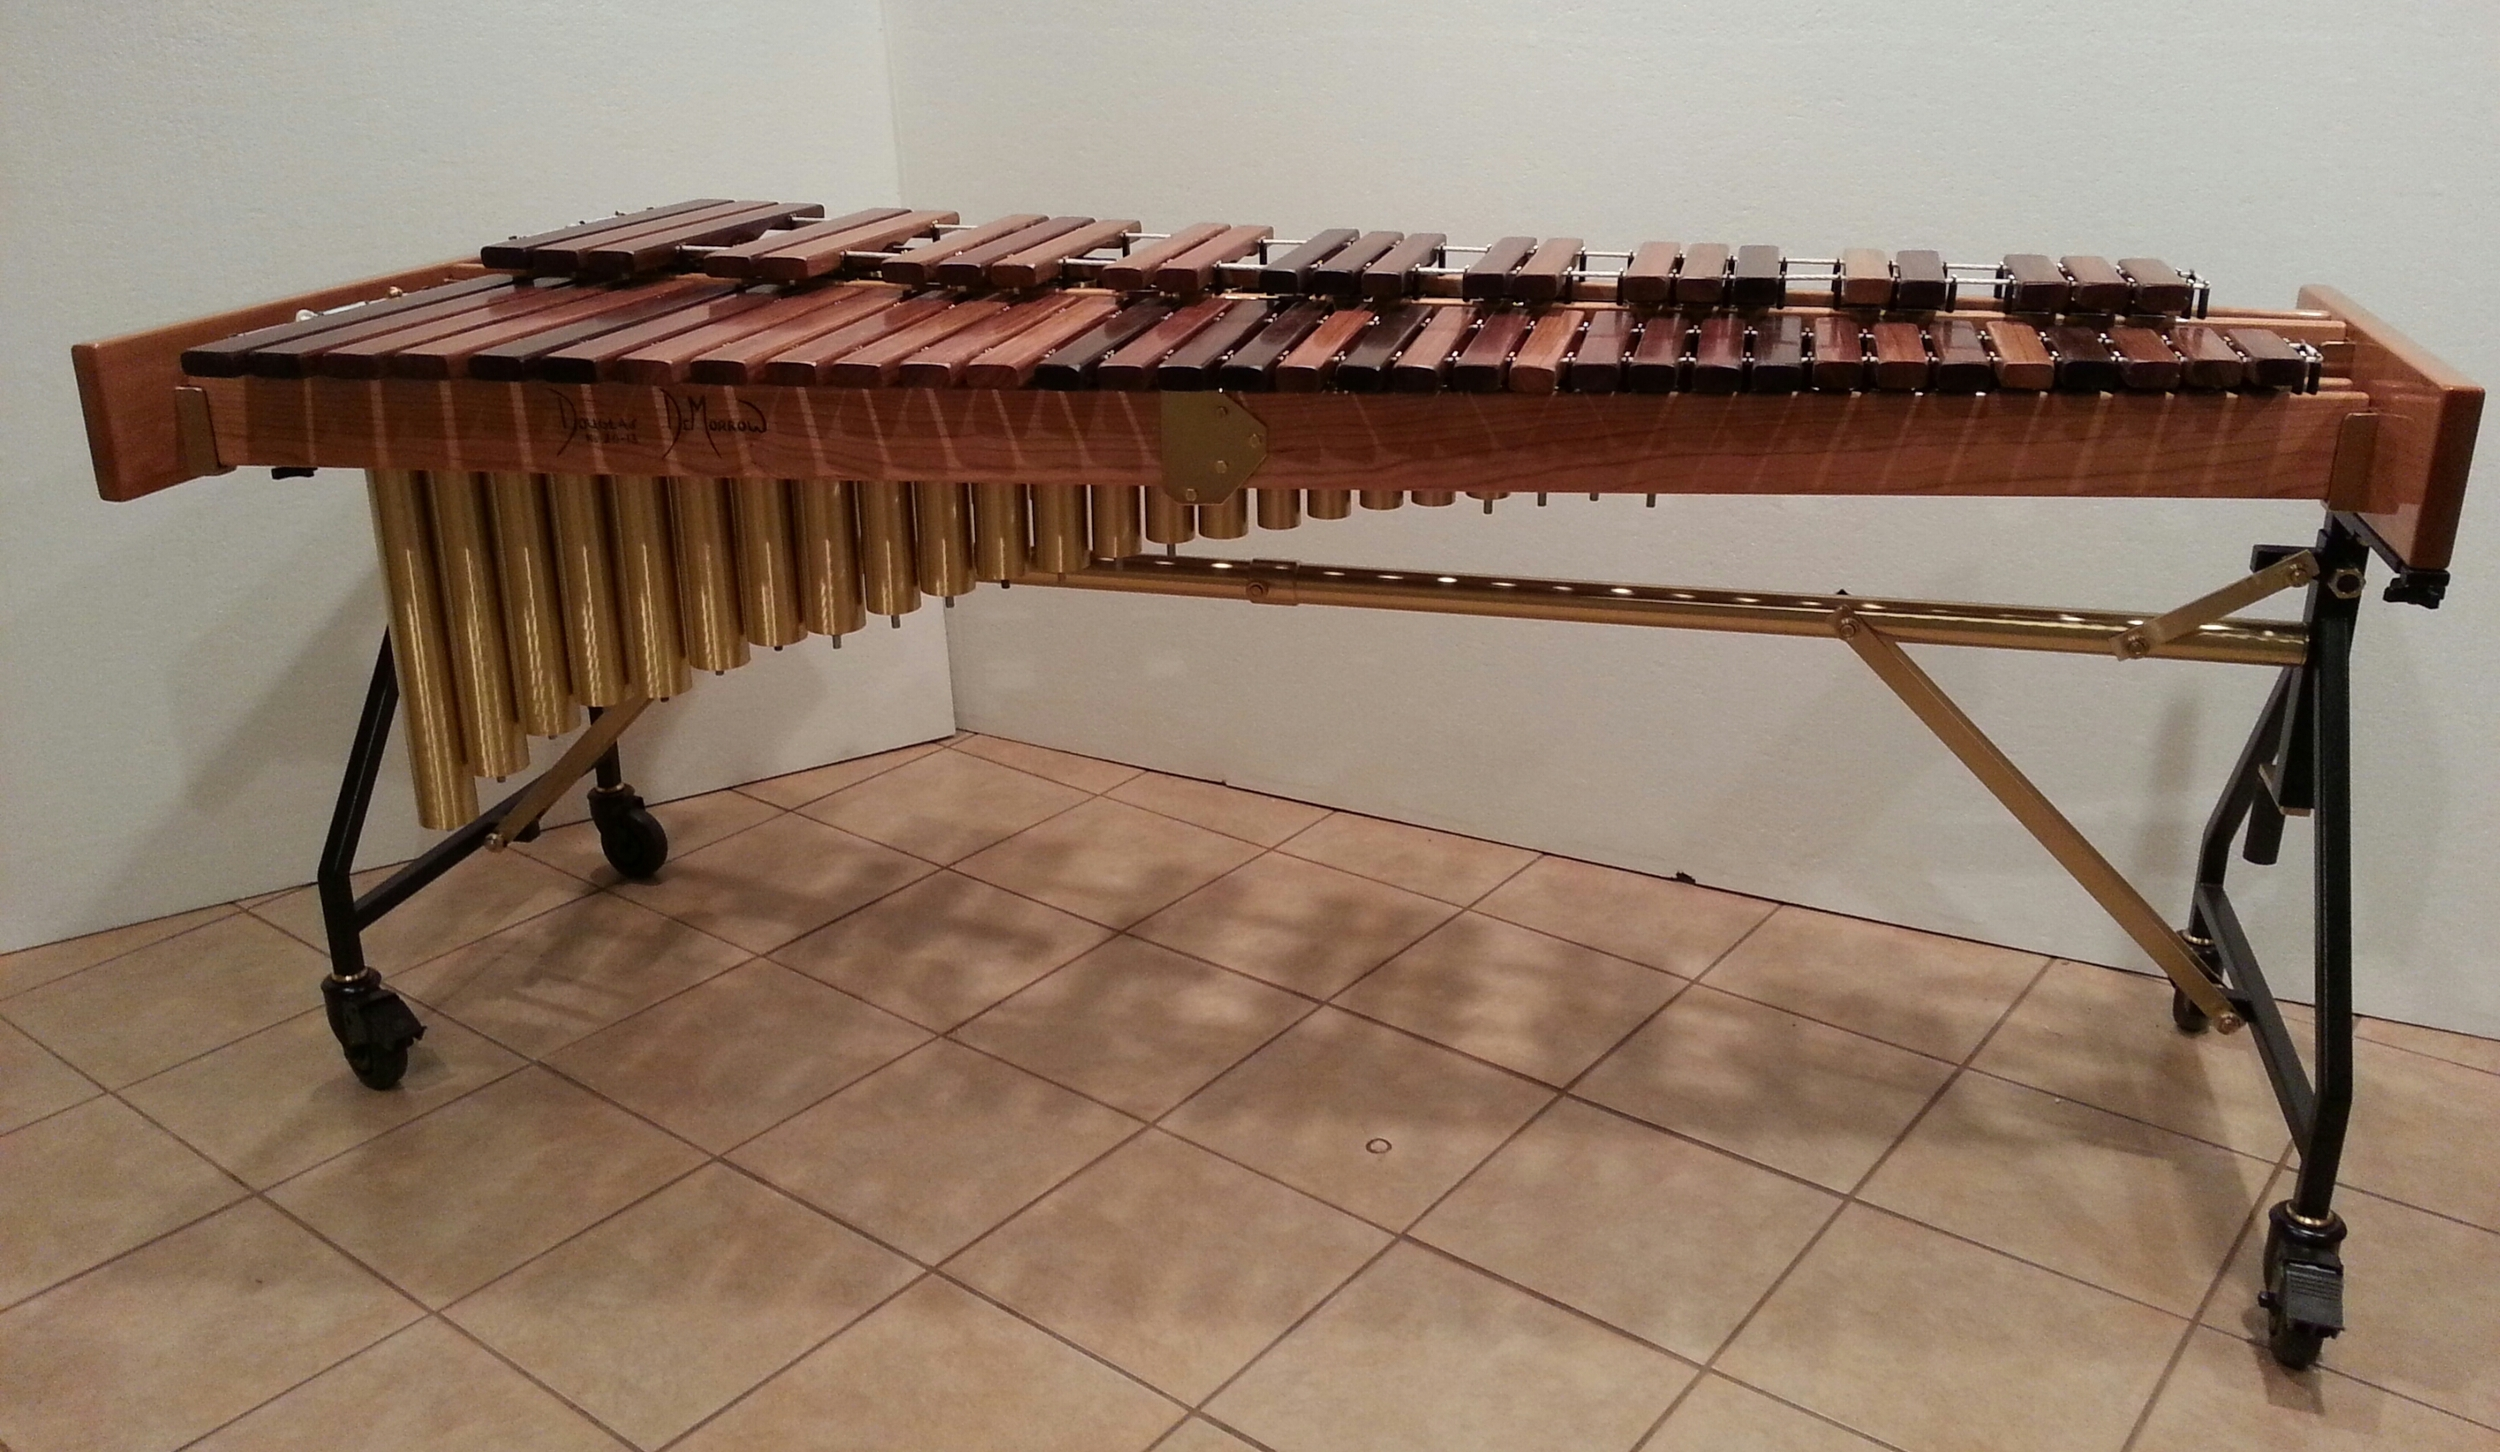 For more pictures of the Xylophone, please click on the Photo Gallery tab and then the Xylophone